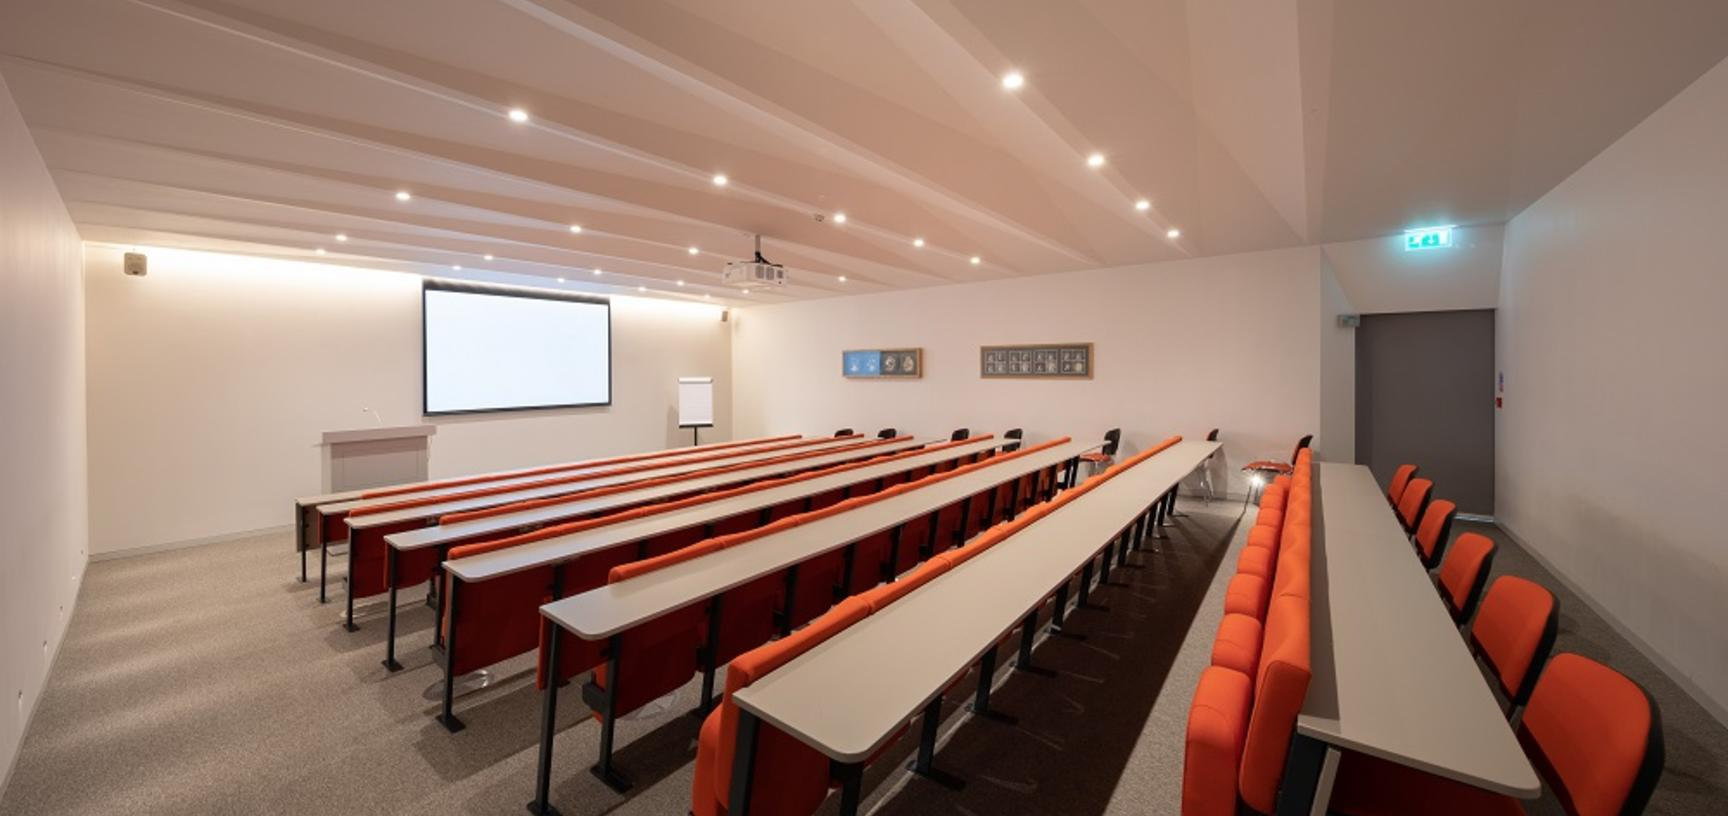 The West Wing Lecture Theatre